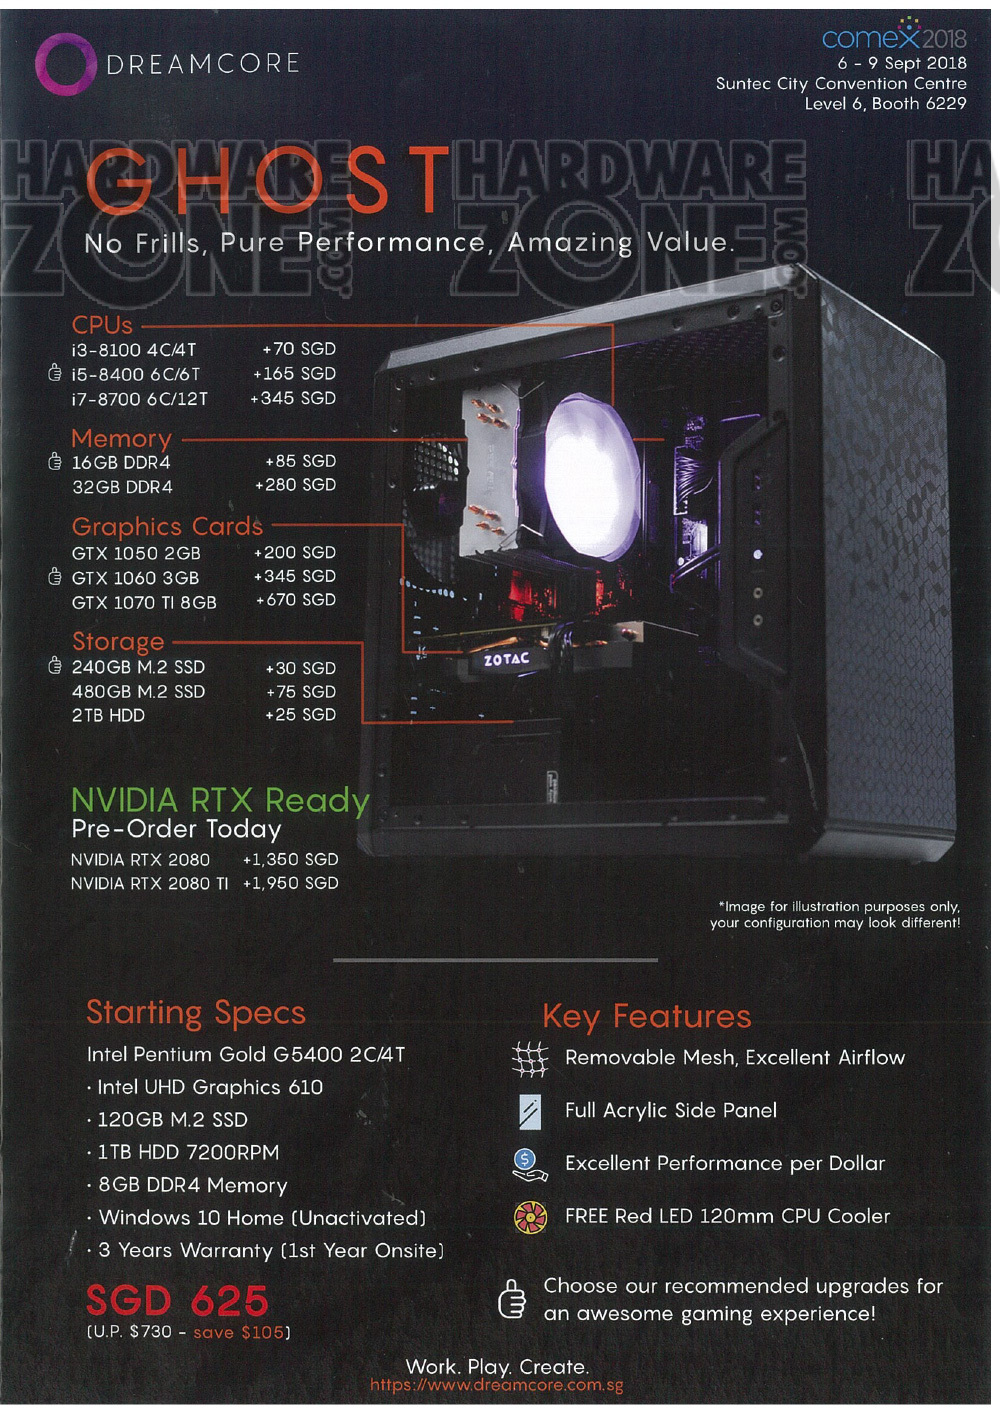 Dreamcore - page 1 Brochures from COMEX 2018 Singapore on